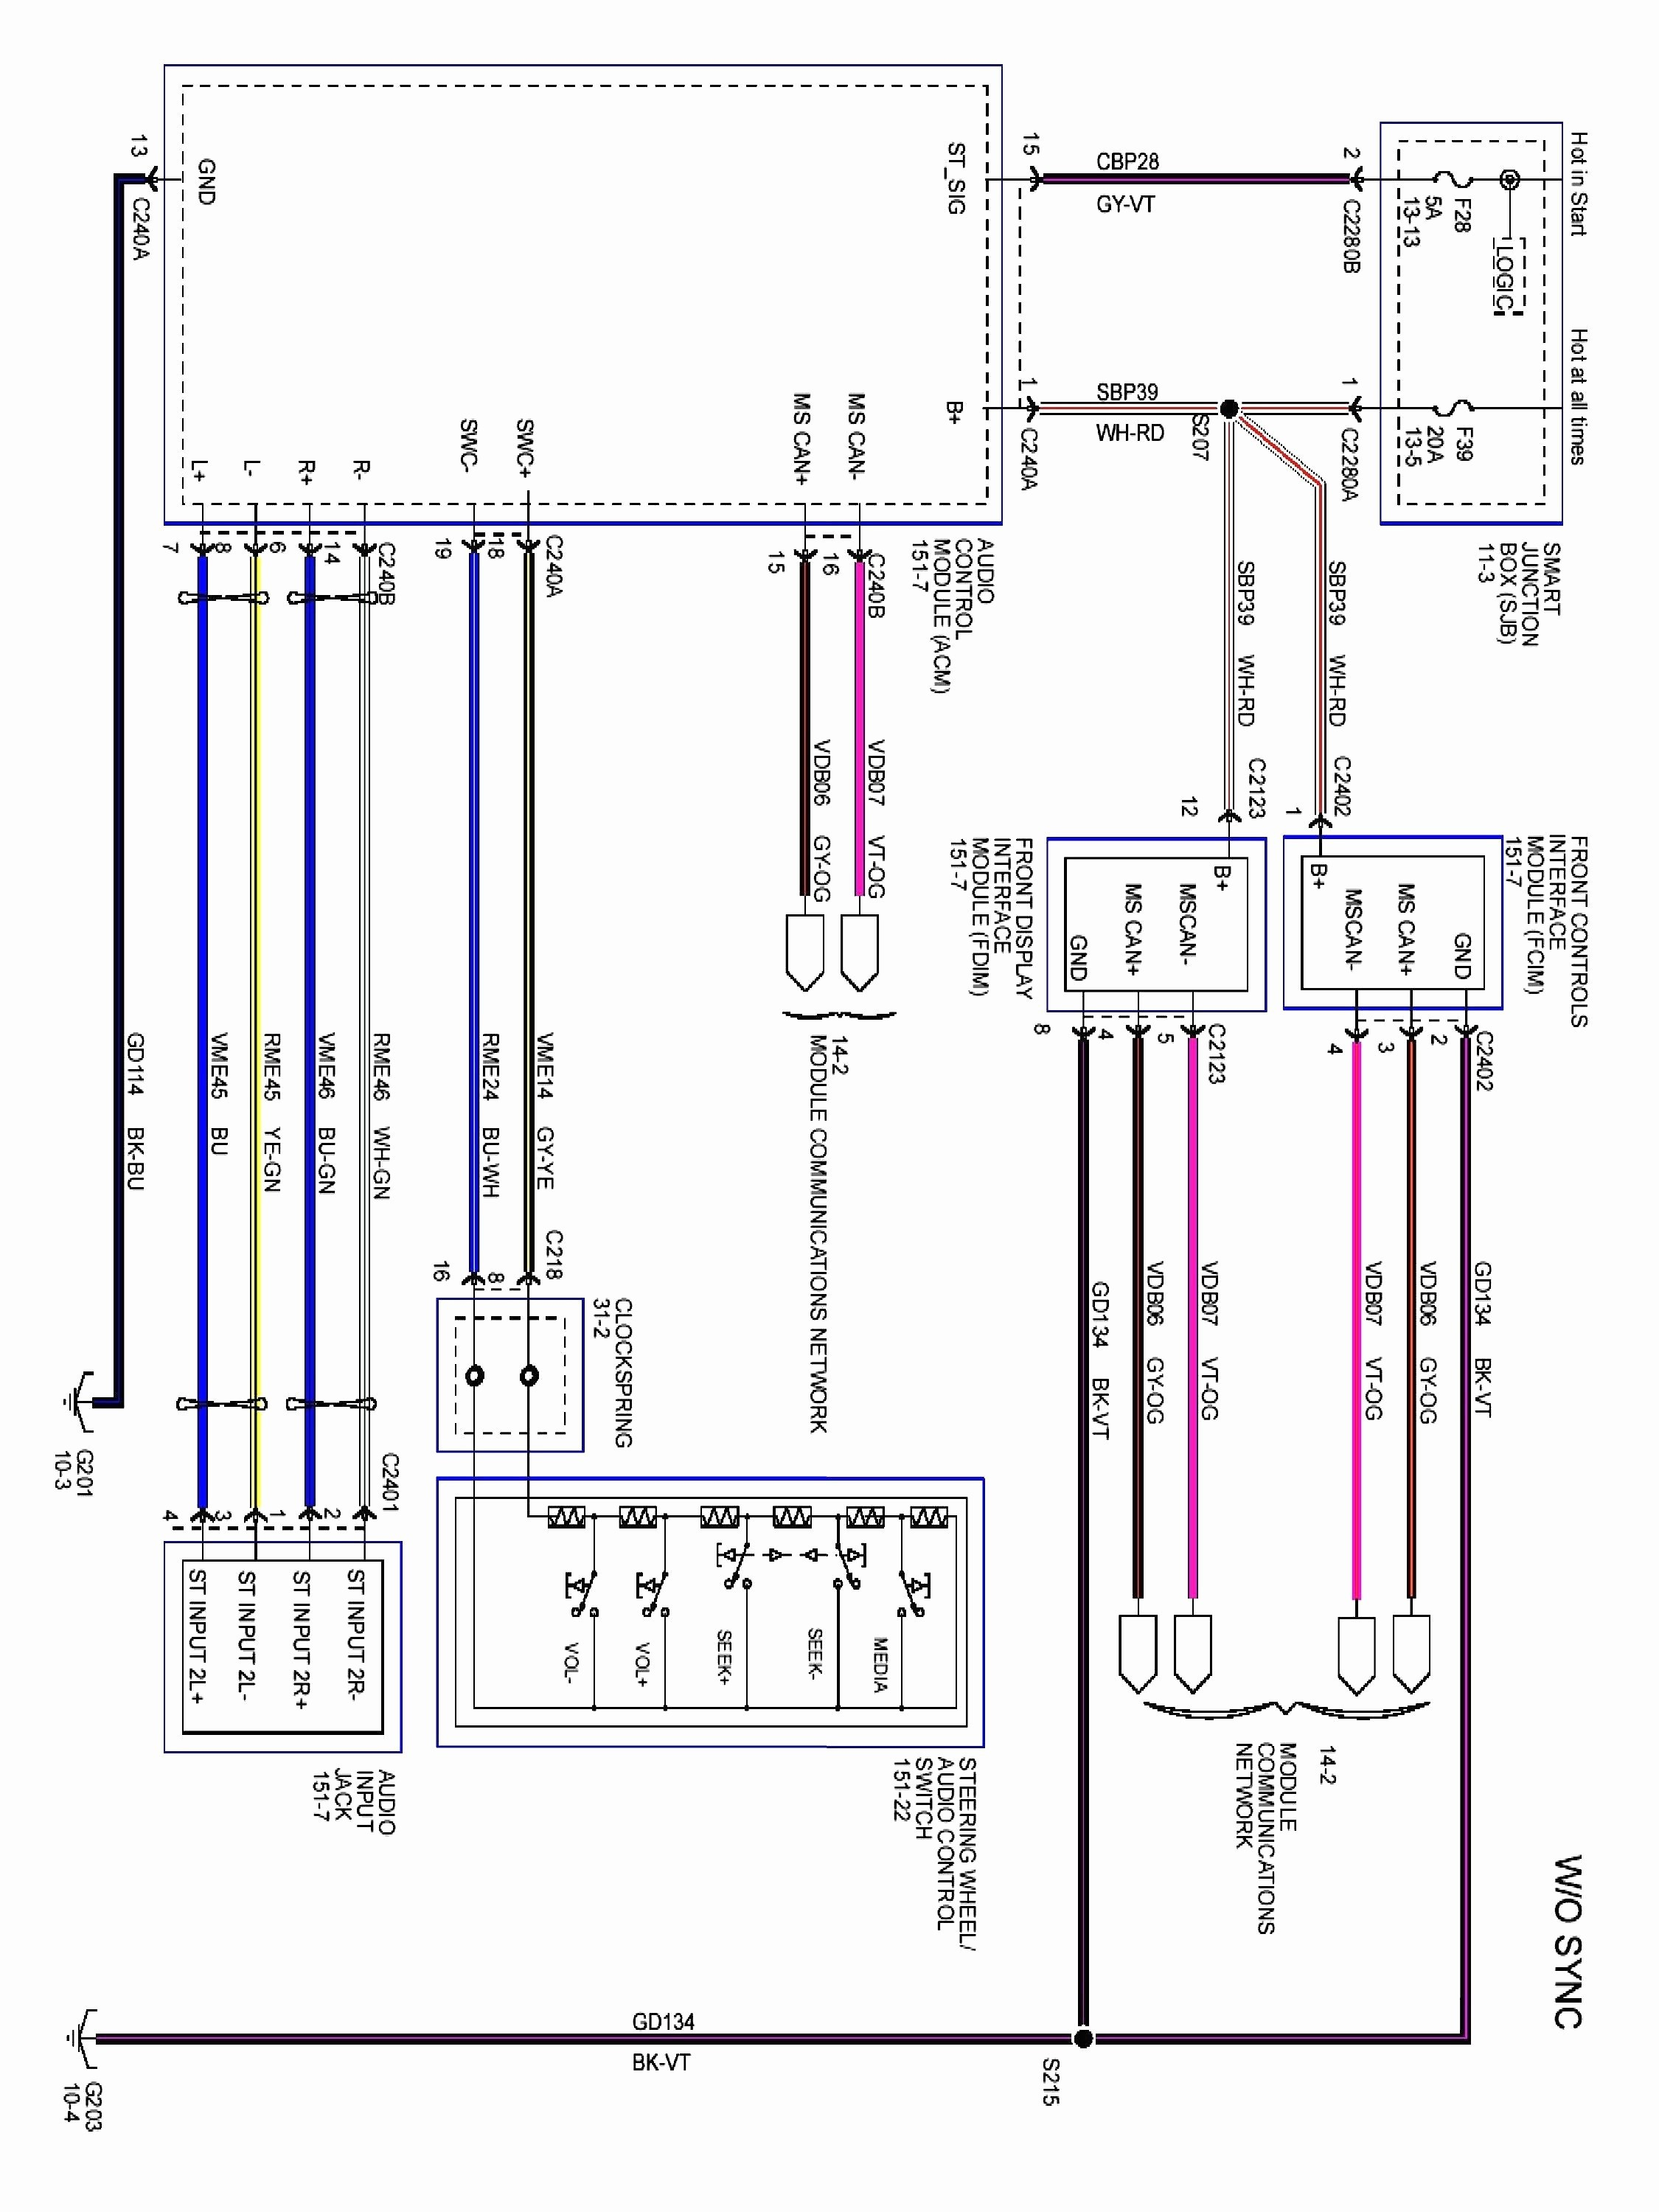 Wiring Diagram for Amplifier Car Stereo Best Amplifier Wiring Diagram Inspirational Car Stereo Wiring Diagrams 0d